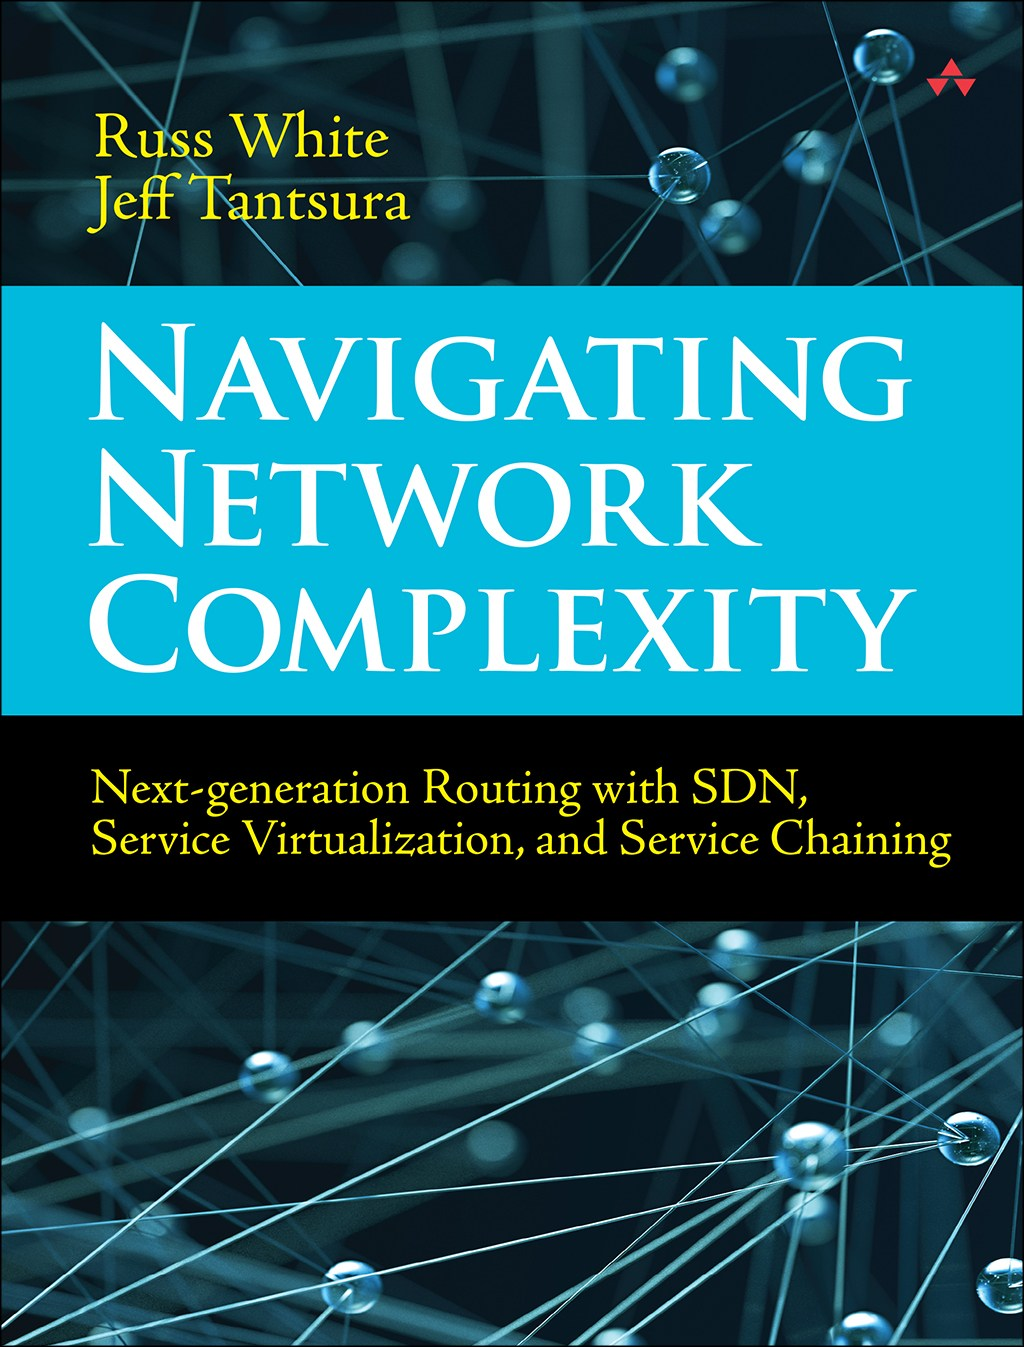 Navigating Network Complexity: Next-generation routing with SDN, service virtualization, and service chaining